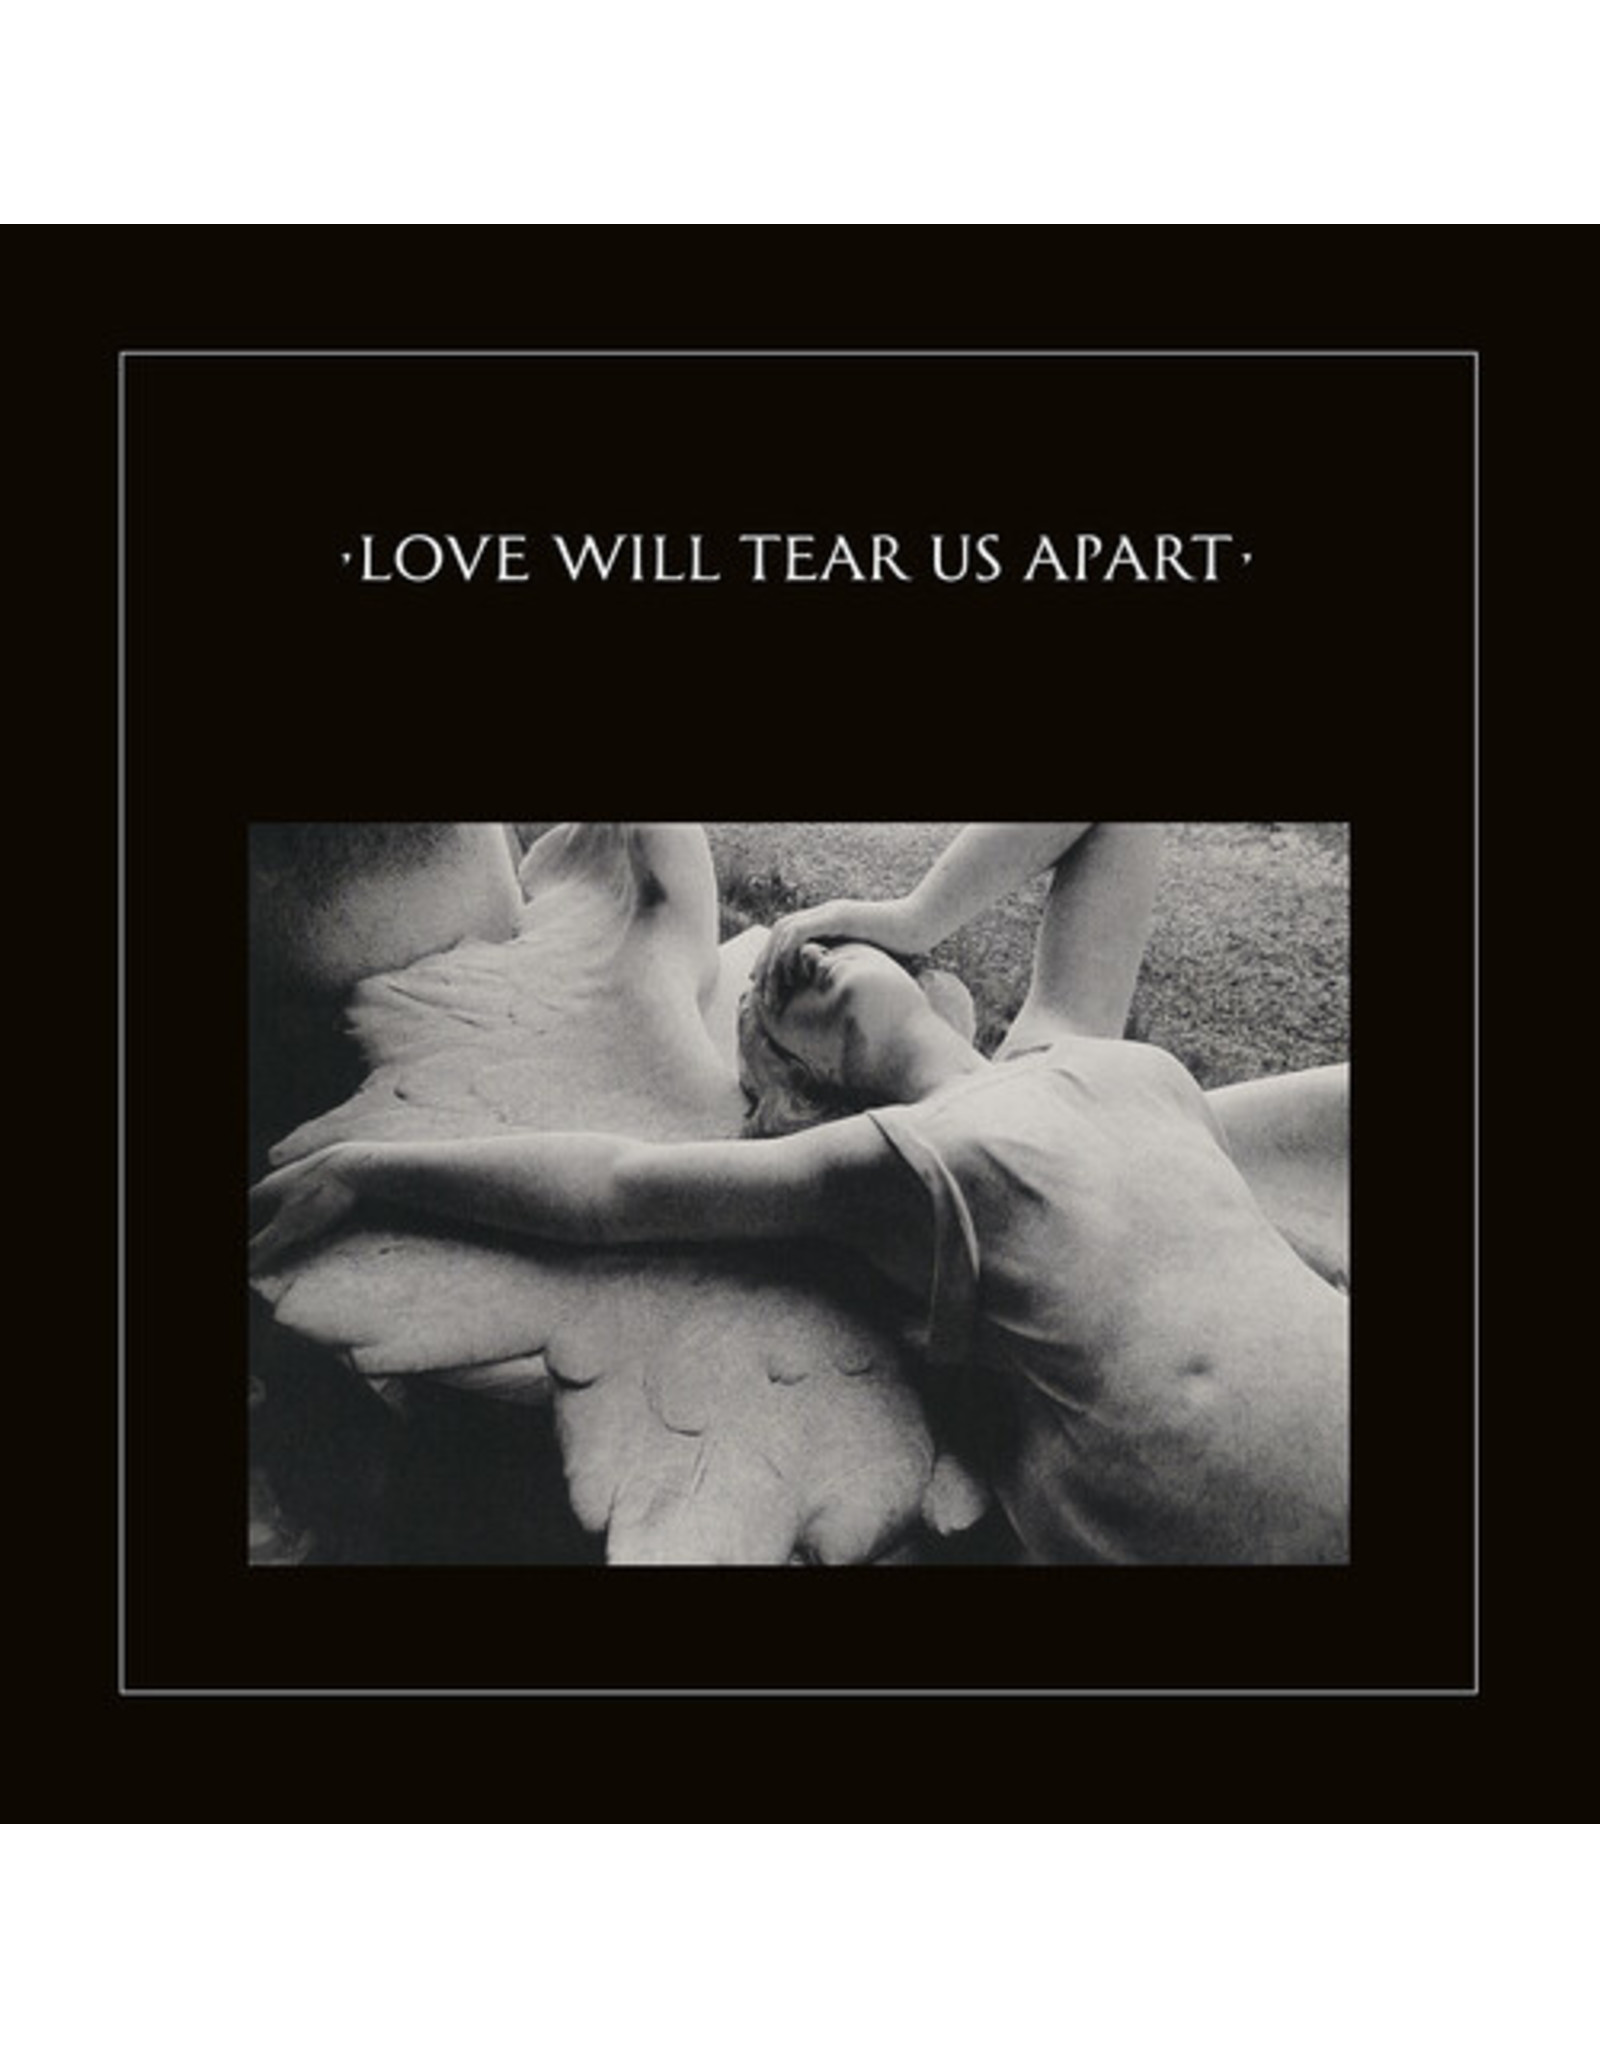 New Vinyl Joy Division - Love Will Tear Us Apart (2020 Remaster) 12""